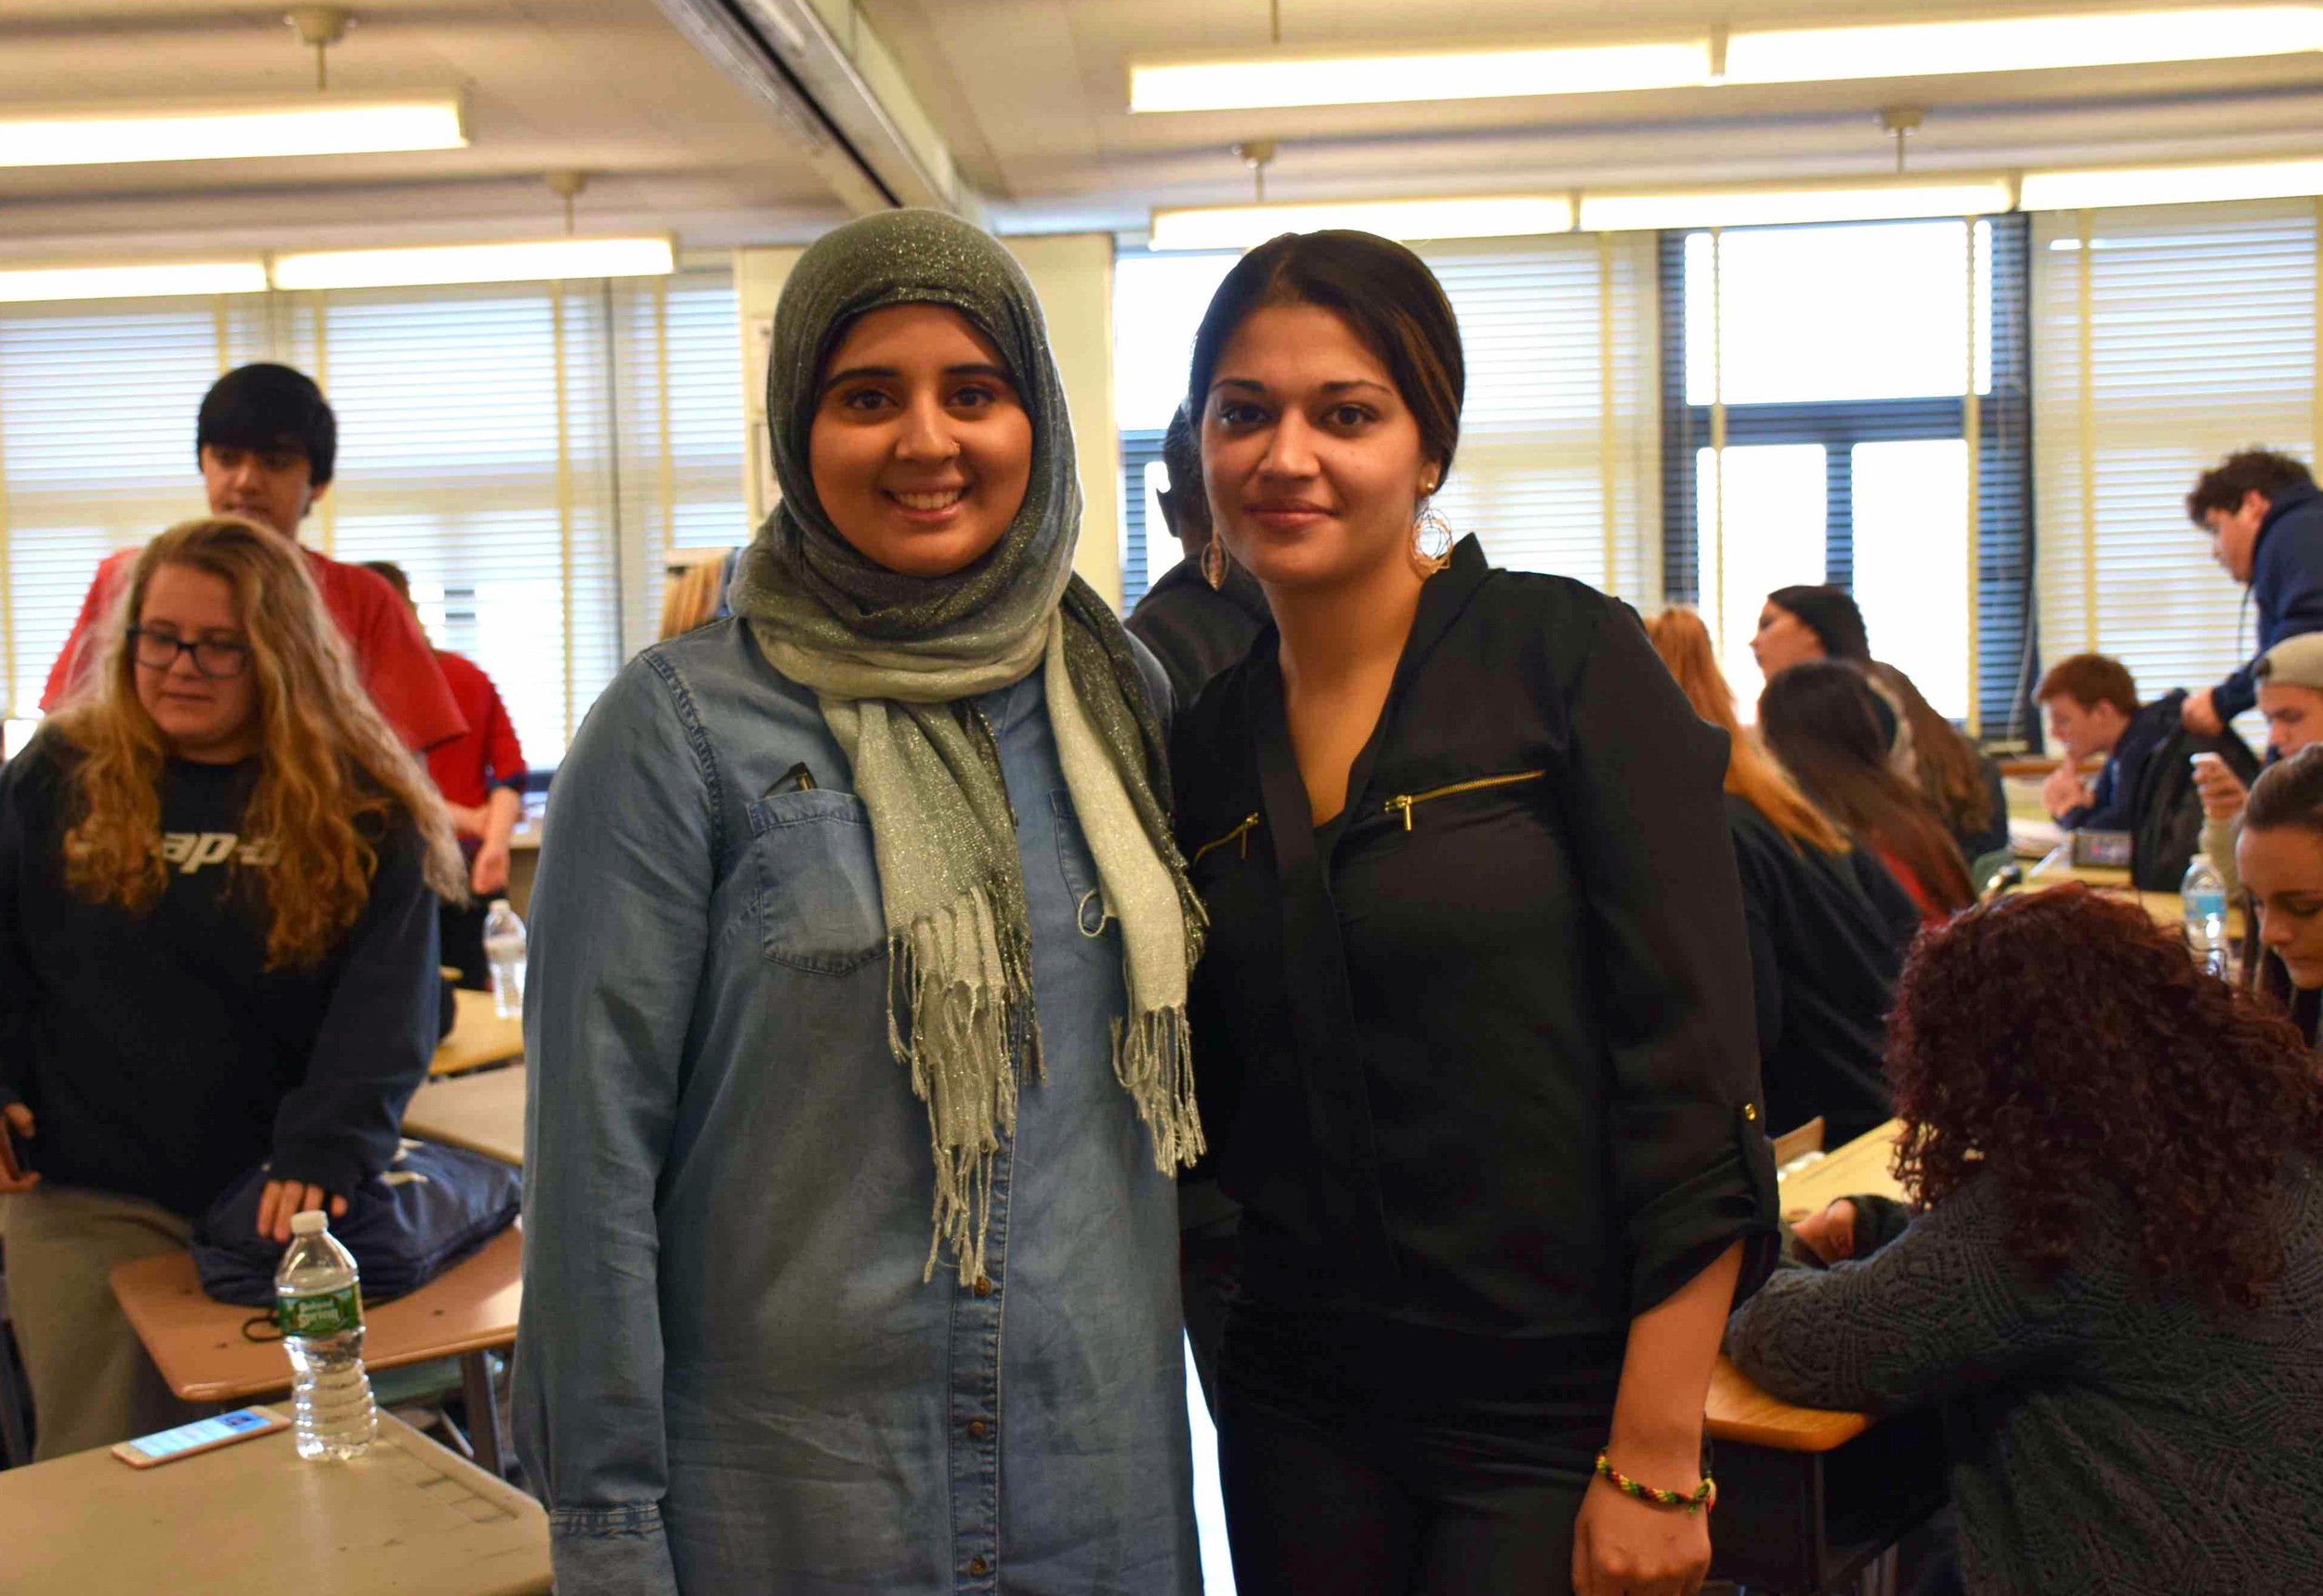 Mepham student Rina Sarfraz, left, reached out to Naila Amin, 27, of Baldwin, to organize her presentation for the school's Leadership and Voices of the Past students.